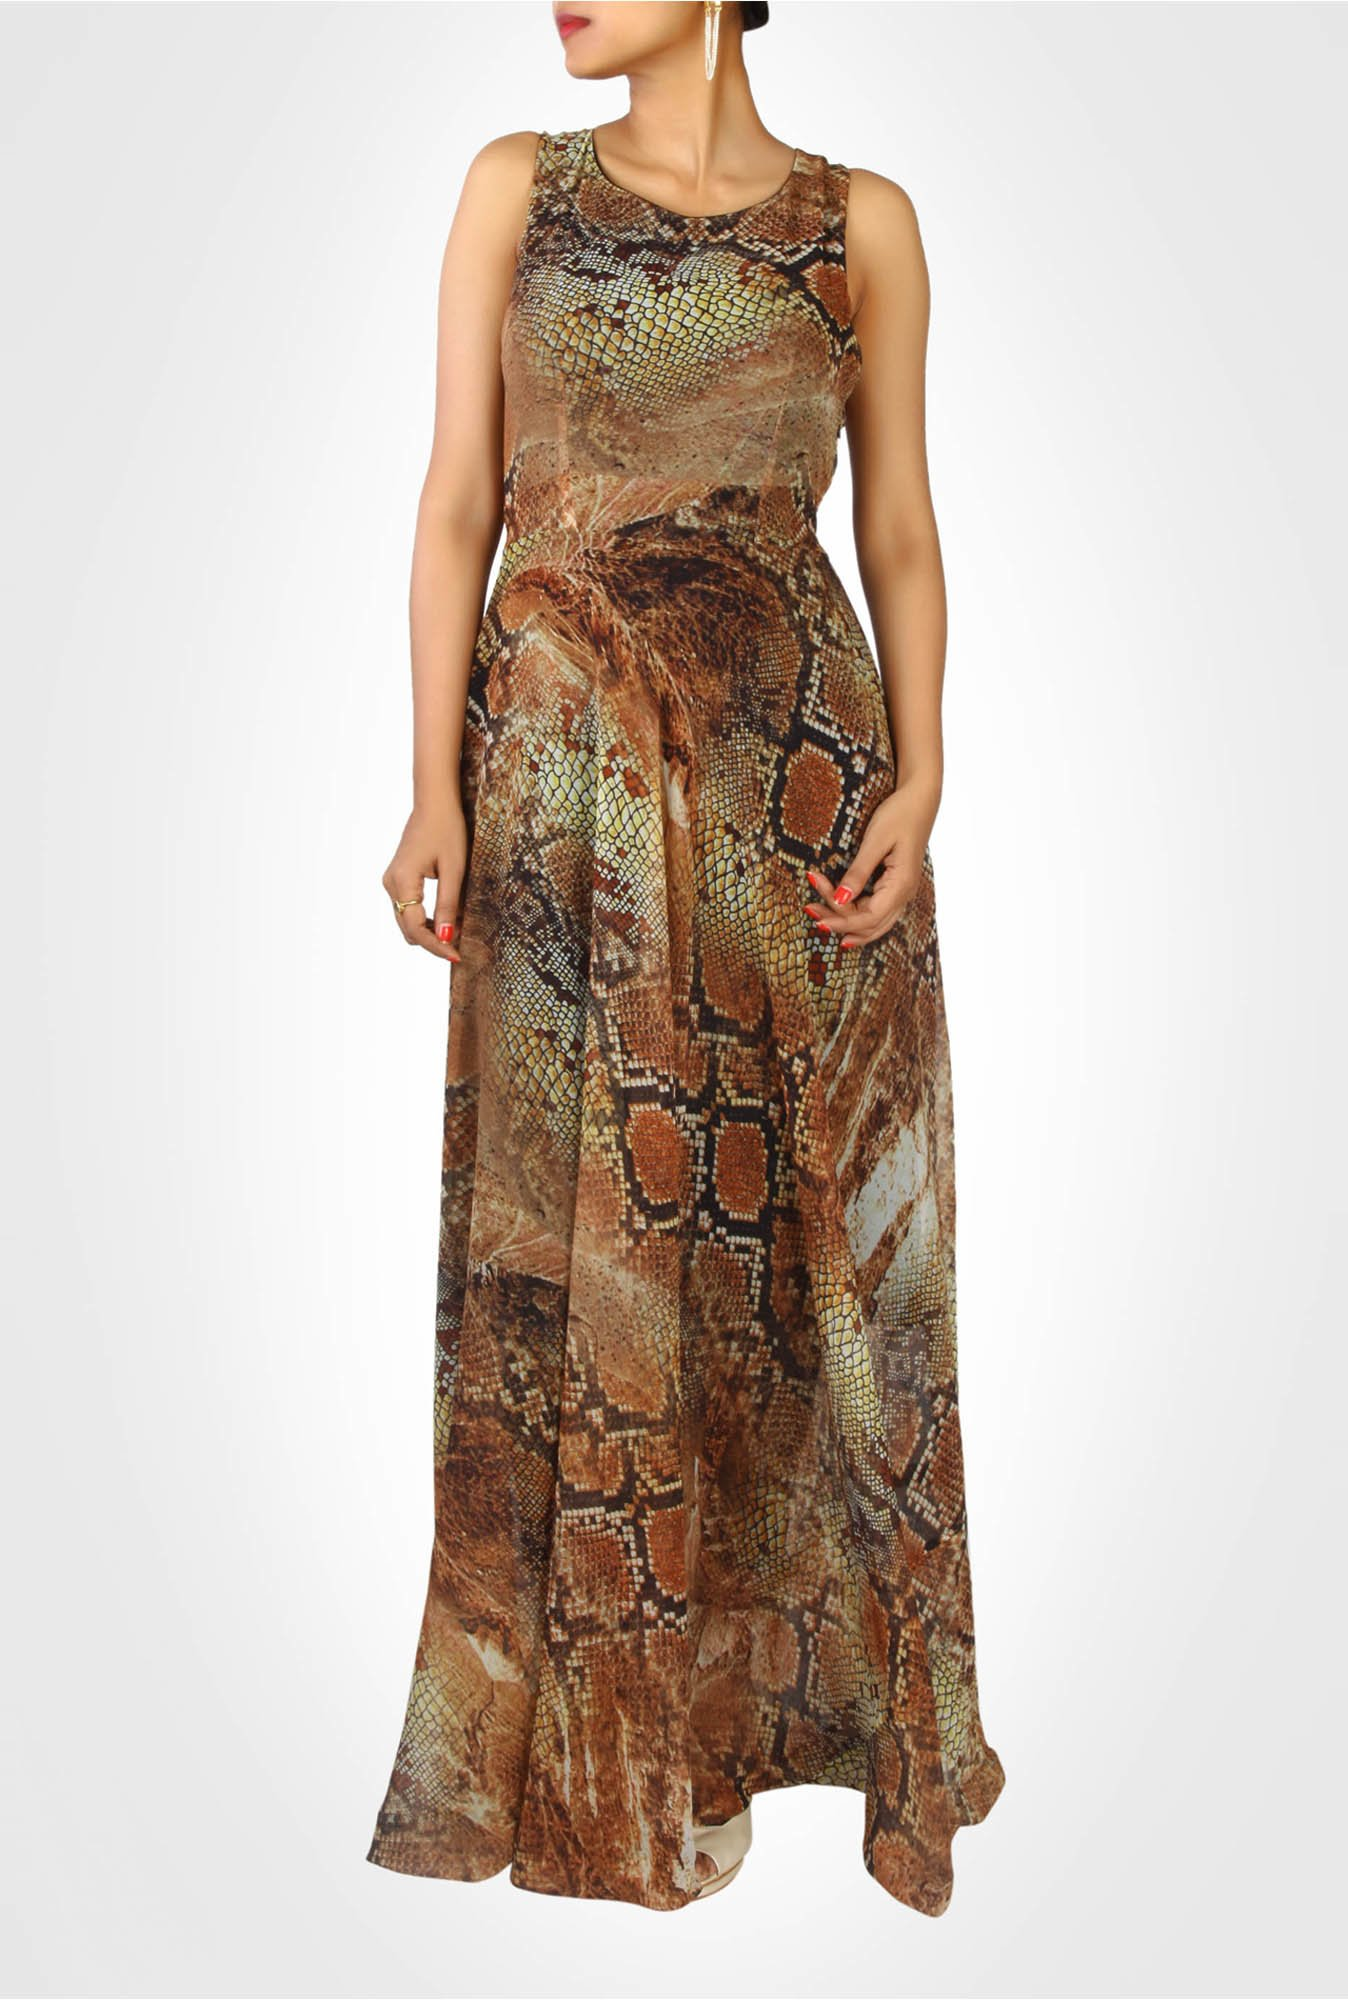 Nikita Mhaisalkar Designer Brown Printed Dress by Kimaya